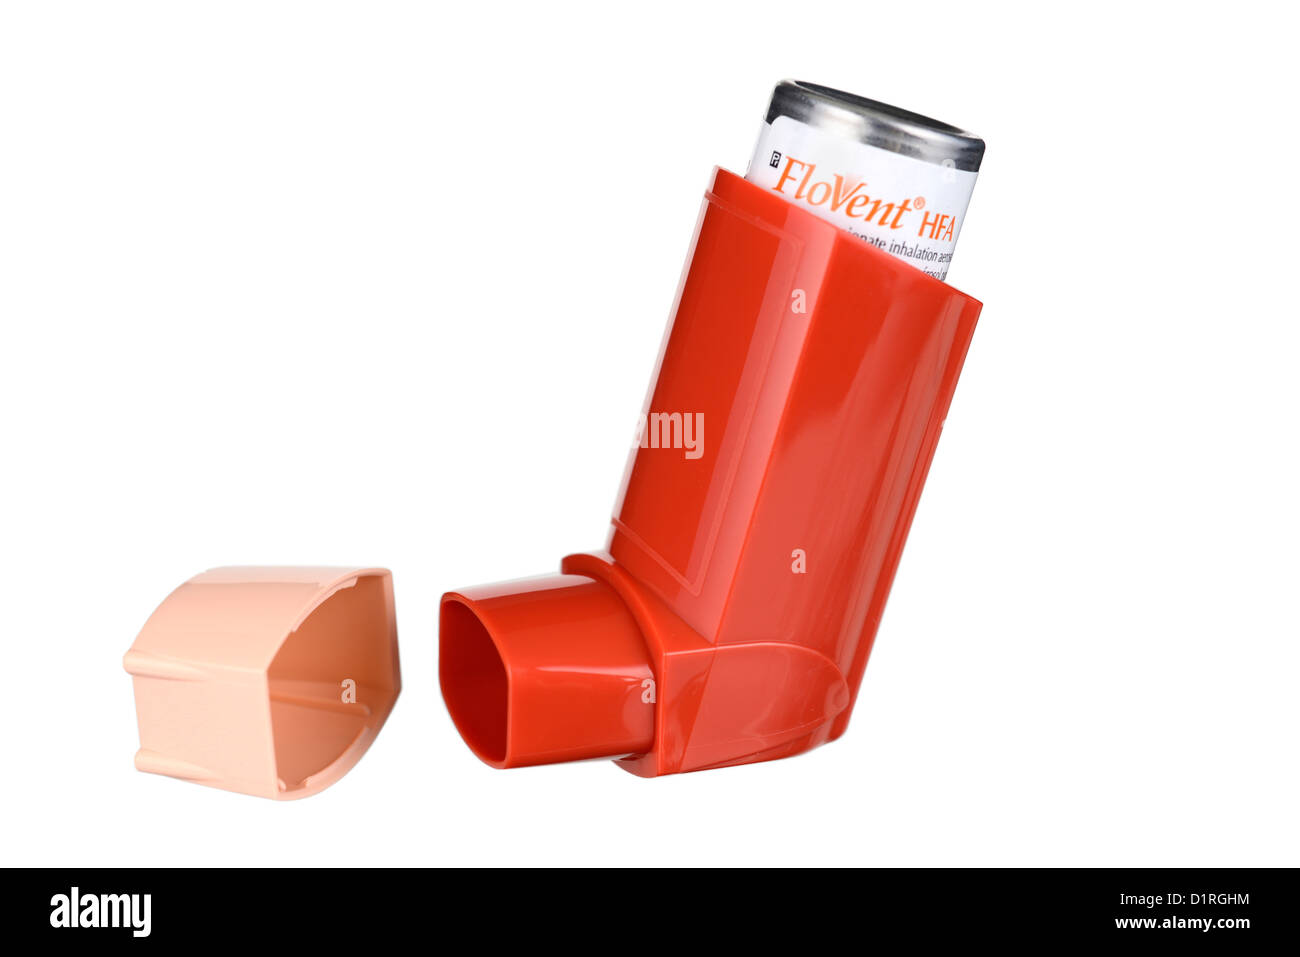 Asthma Inhaler, Inhalers, Bronchodilators Bronchodilator For Allergy, Ventolin, Flovent Salbutamol - Stock Image